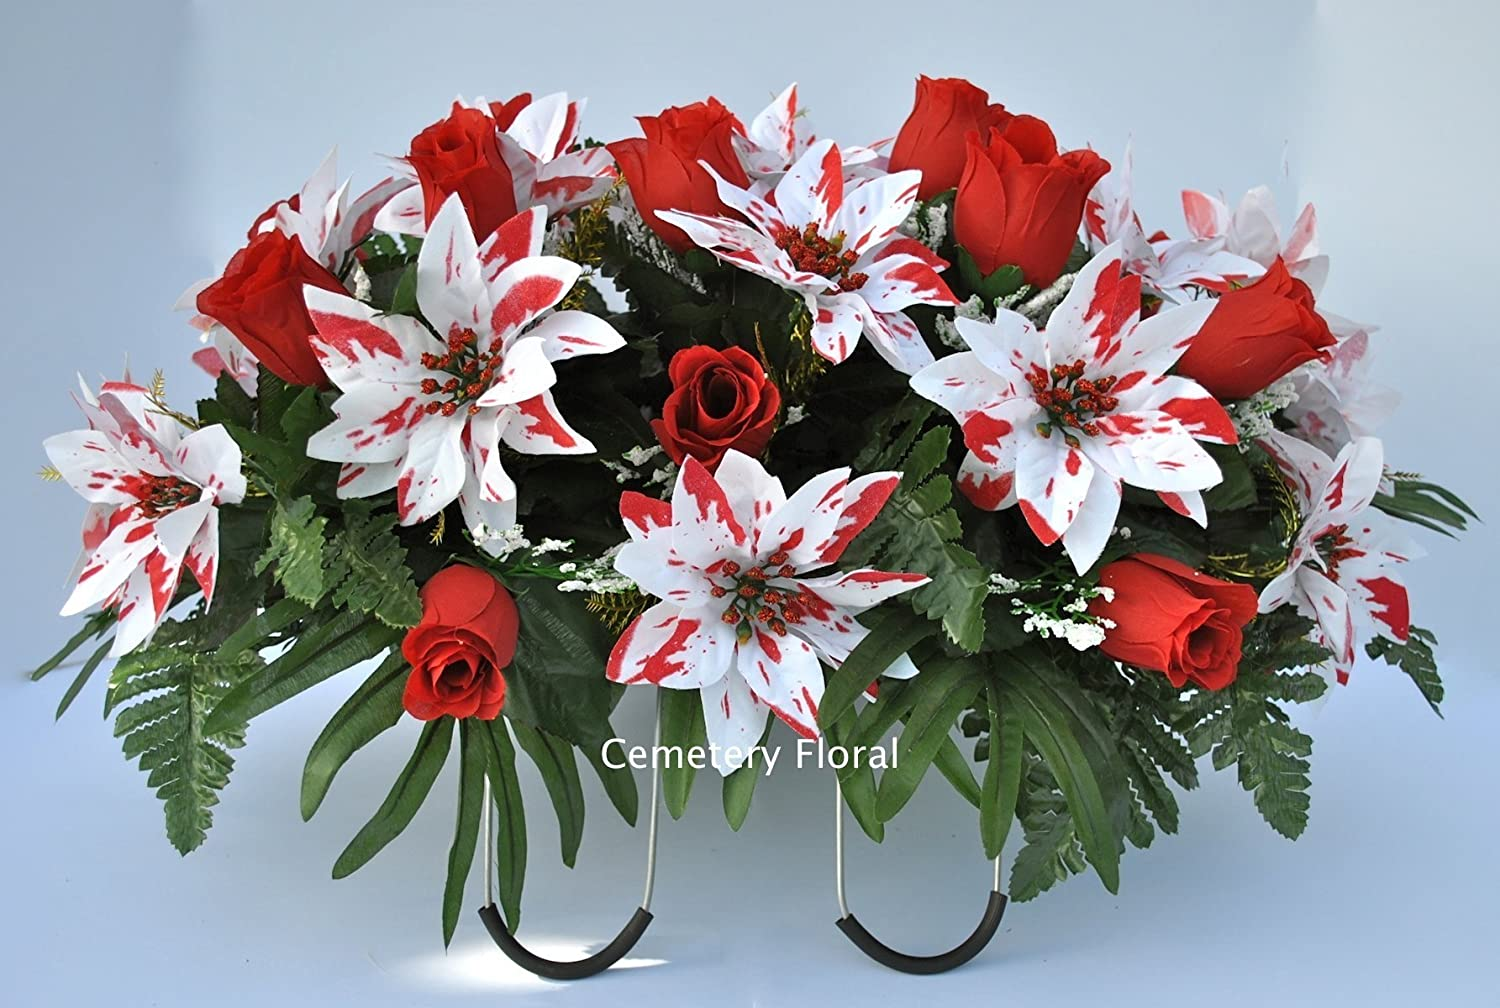 Amazon cemetery headstone decoration for christmas with amazon cemetery headstone decoration for christmas with peppermint poinsettias and red roses as a saddle handmade izmirmasajfo